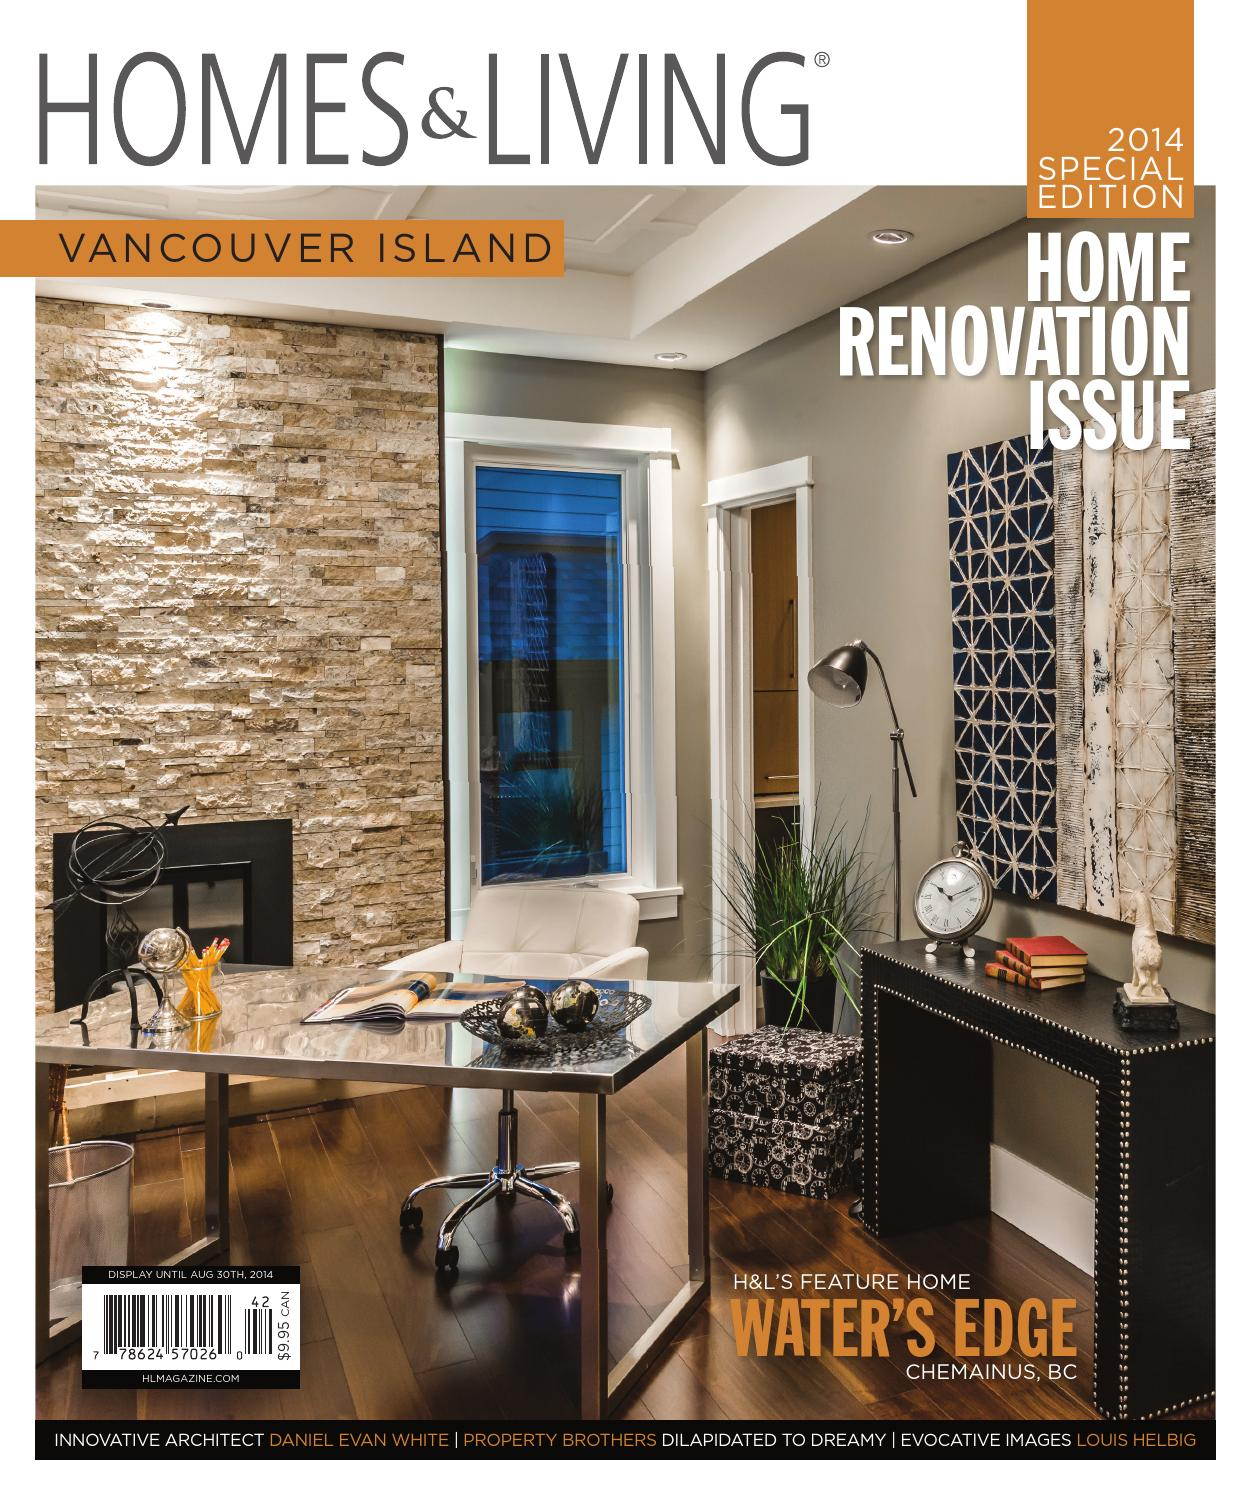 Vancouver Living: Homes & Living Vancouver Island 2014 Home Renovation Issue